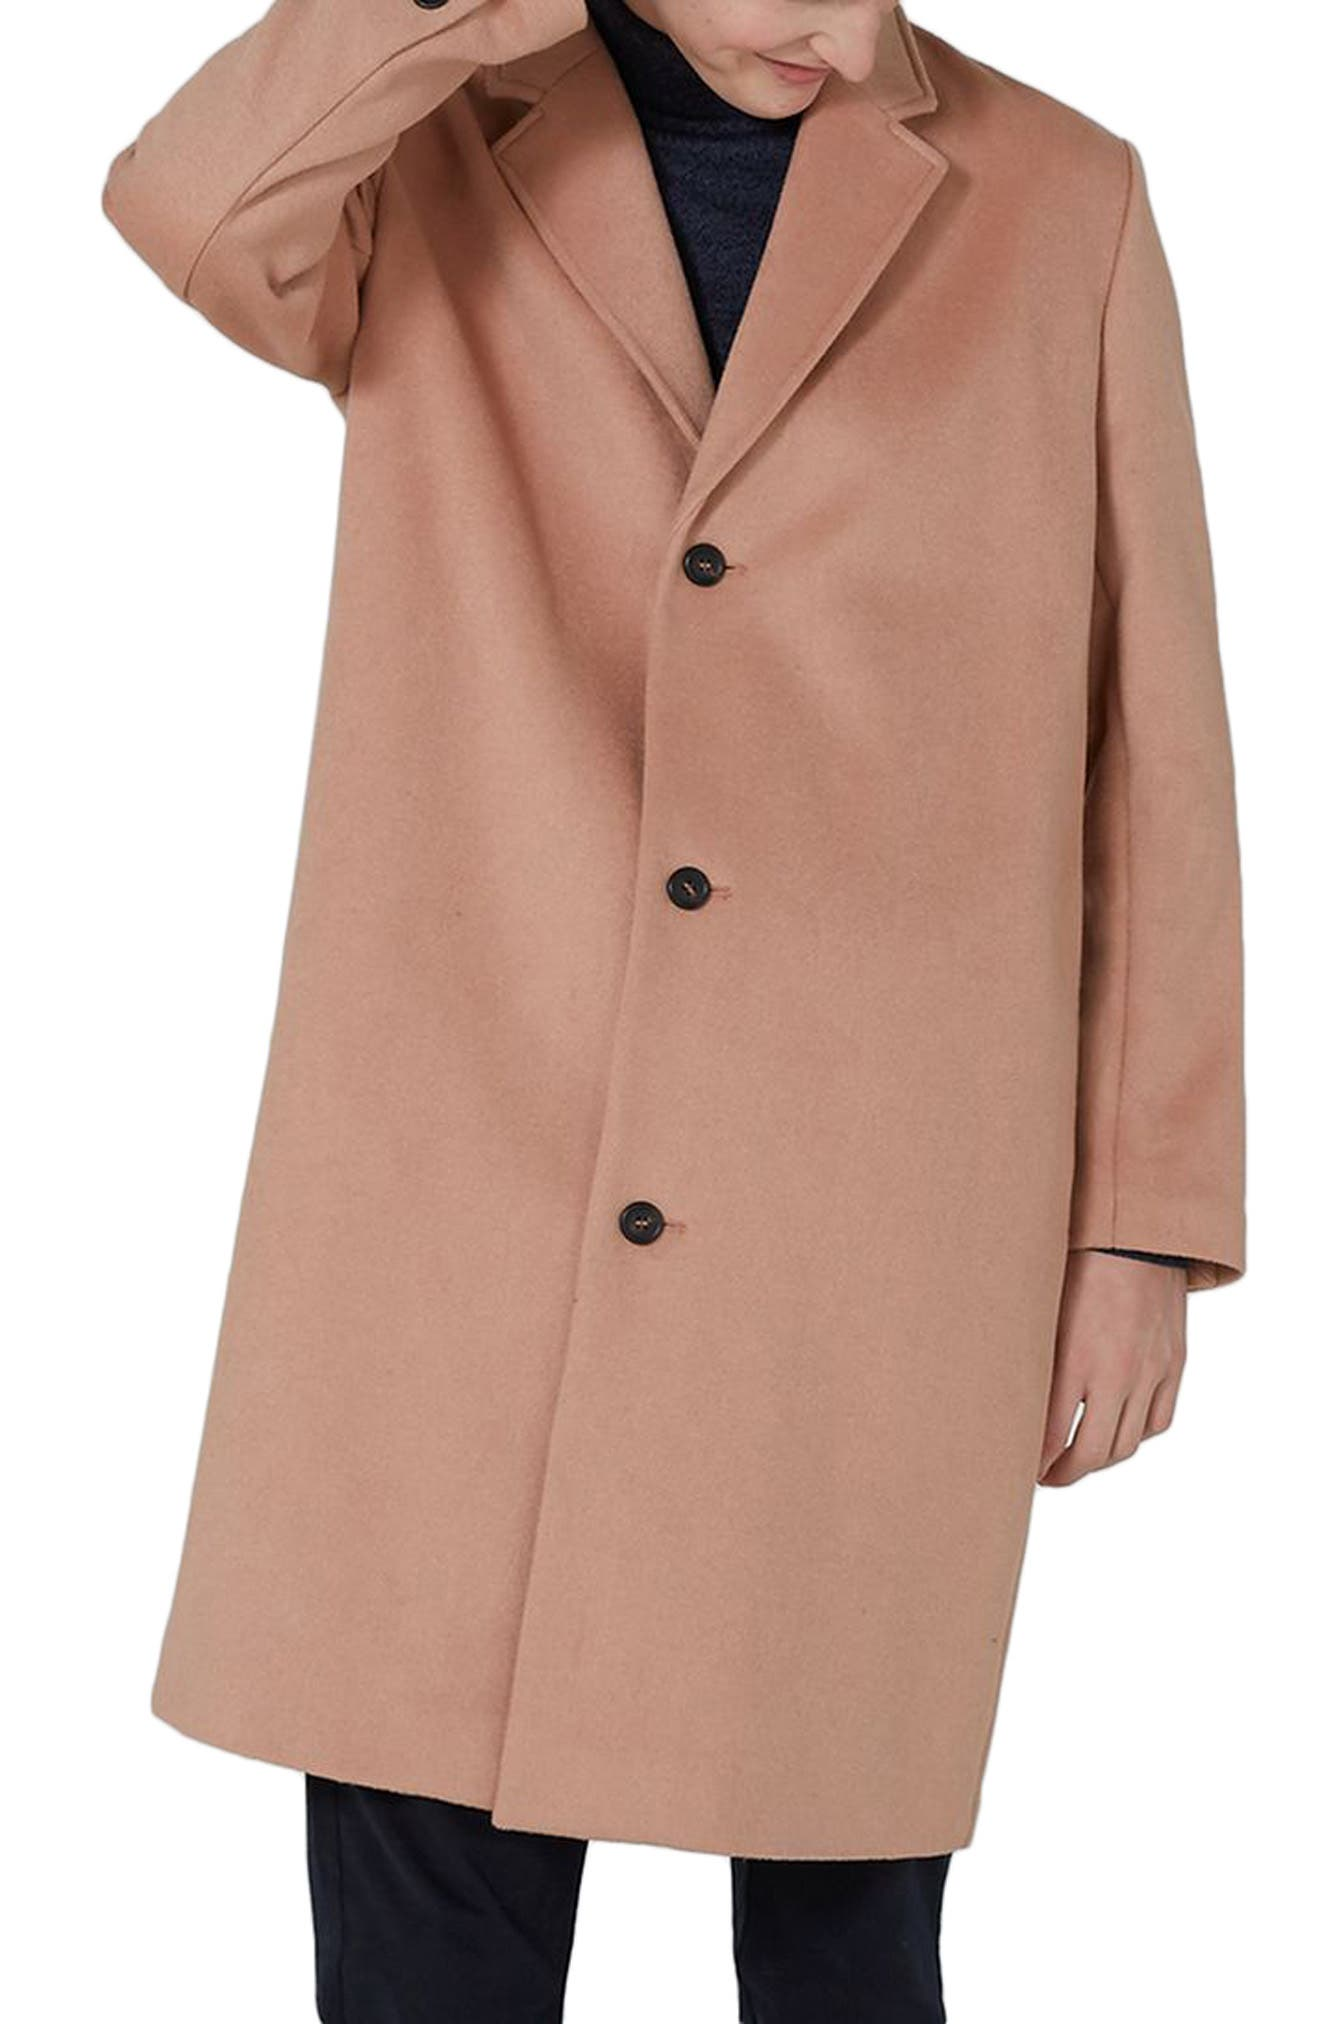 Topman Oversized Single Breasted Coat